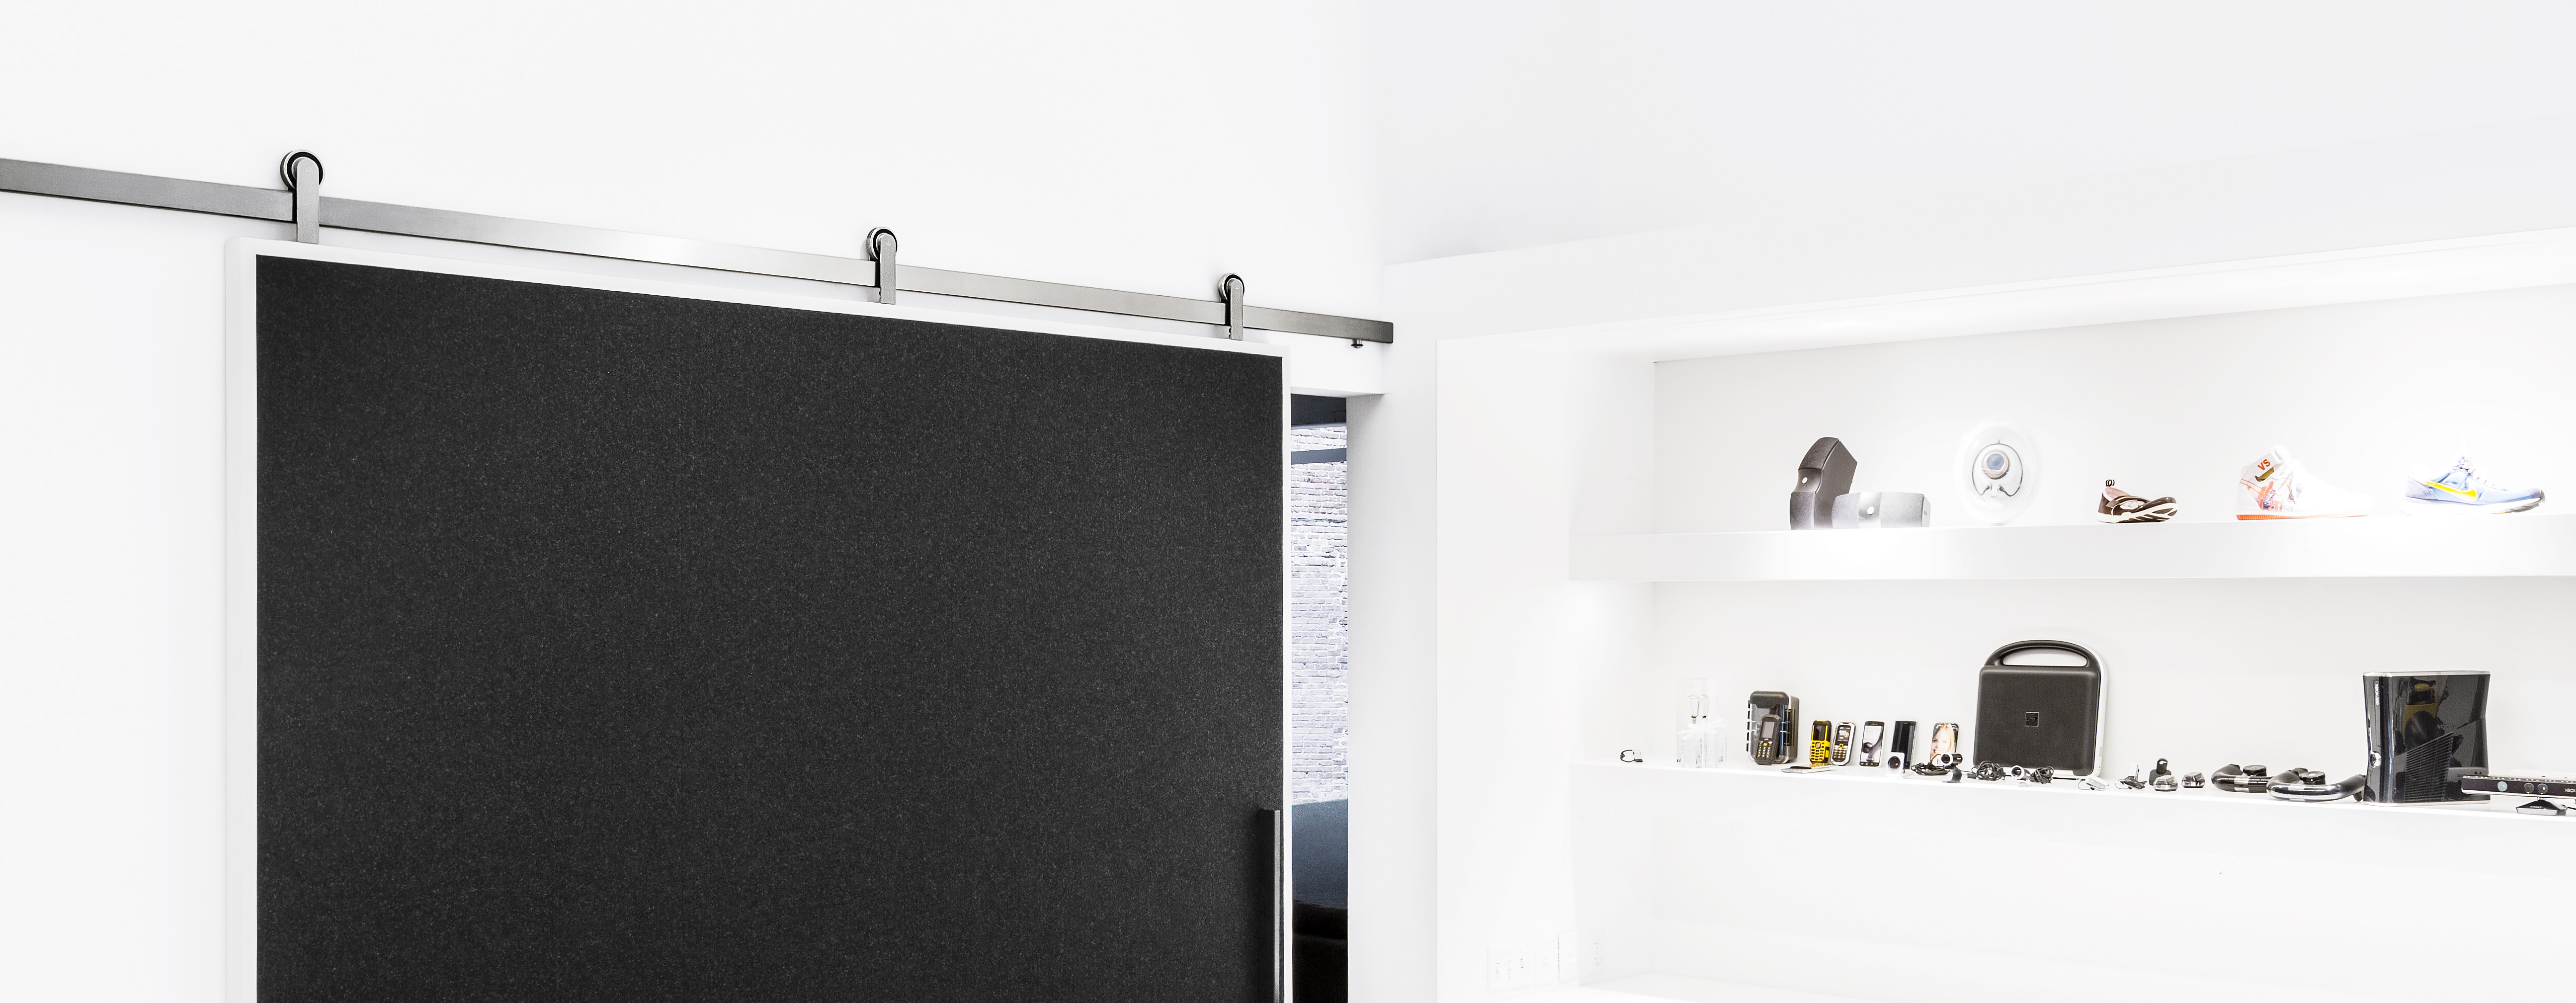 creative office solutions. Complete Solutions For The Creative Office | Modern Barn Door Hardware By Krownlab